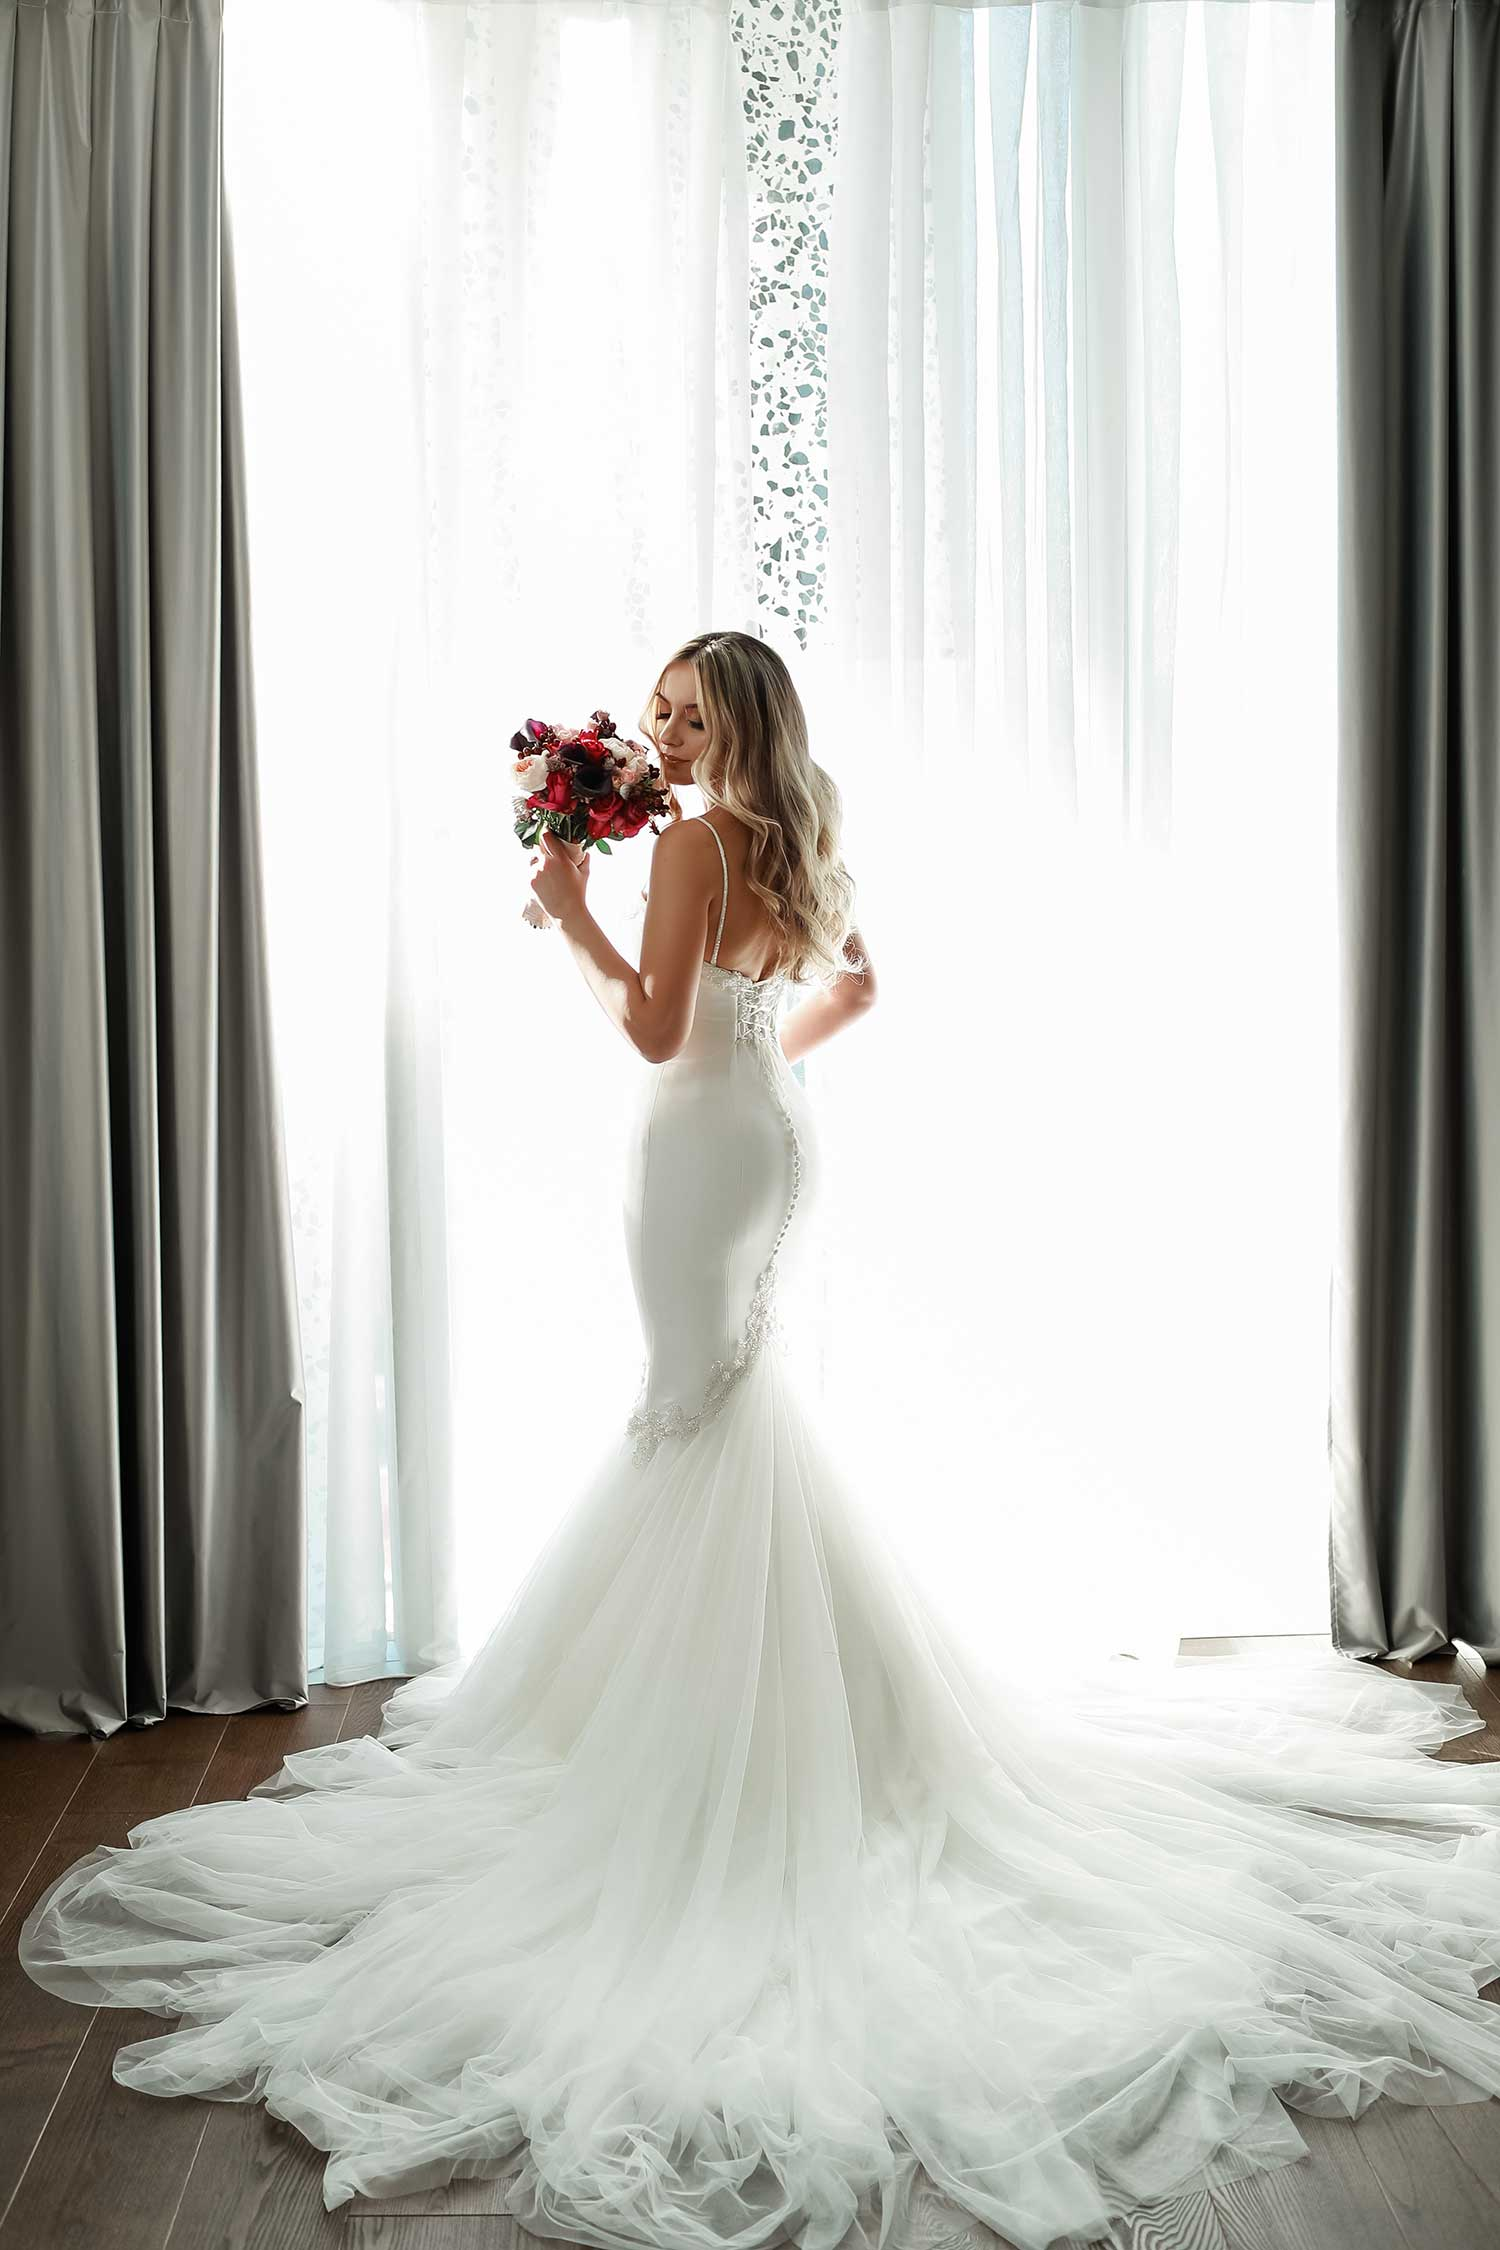 Lovely bride posing at the window